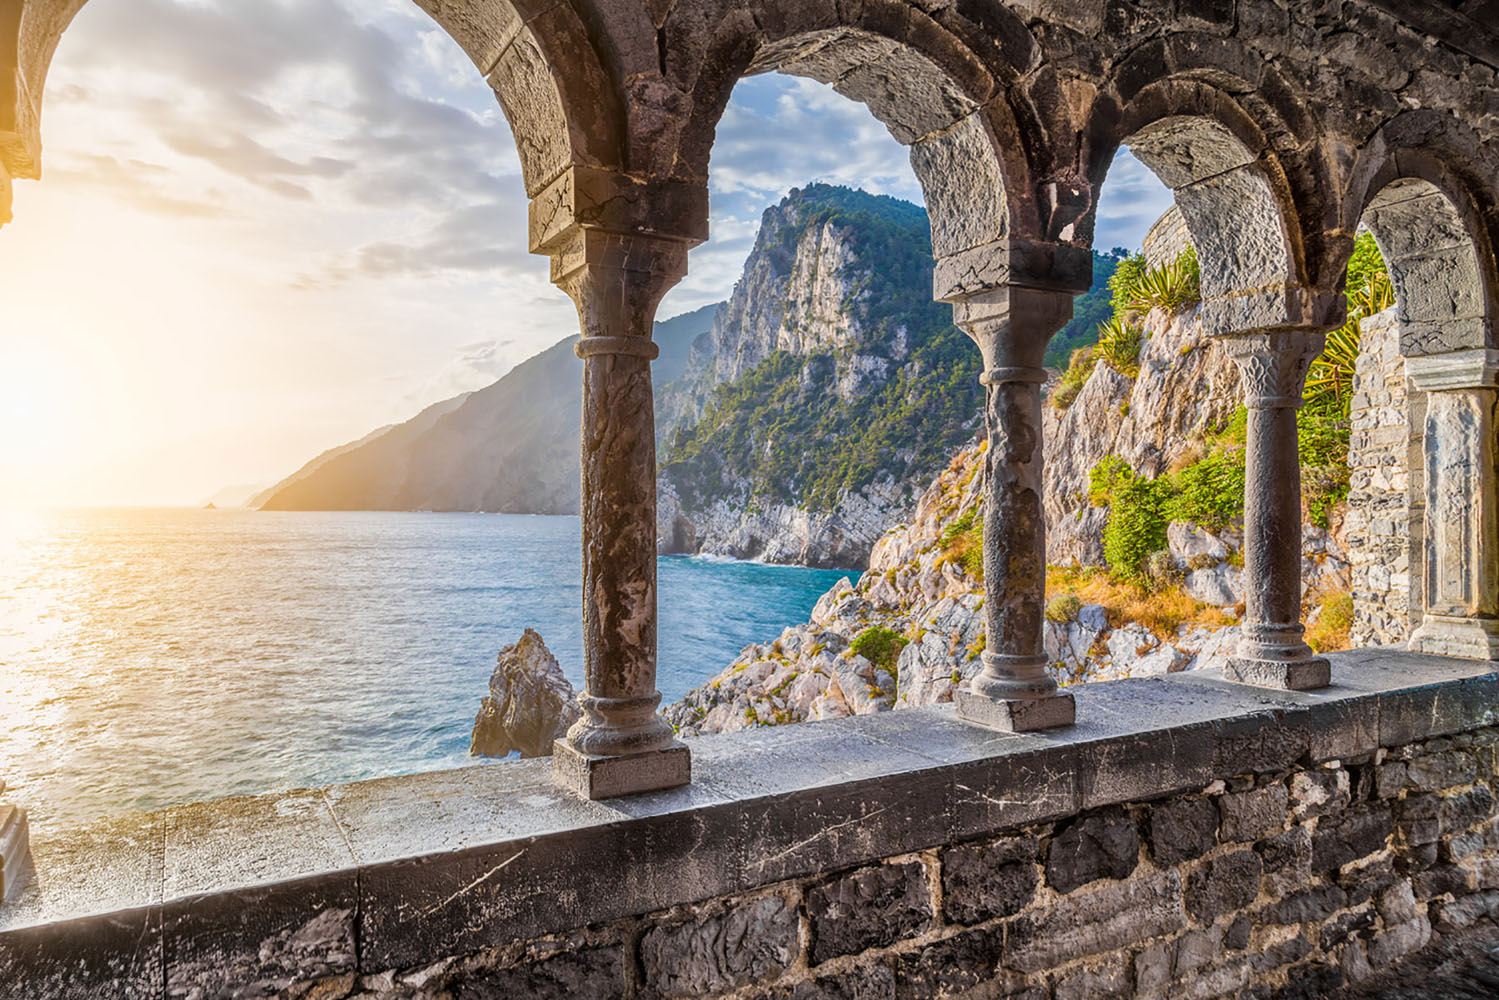 View from the Church of St. Peter in Porto Venere, Italy